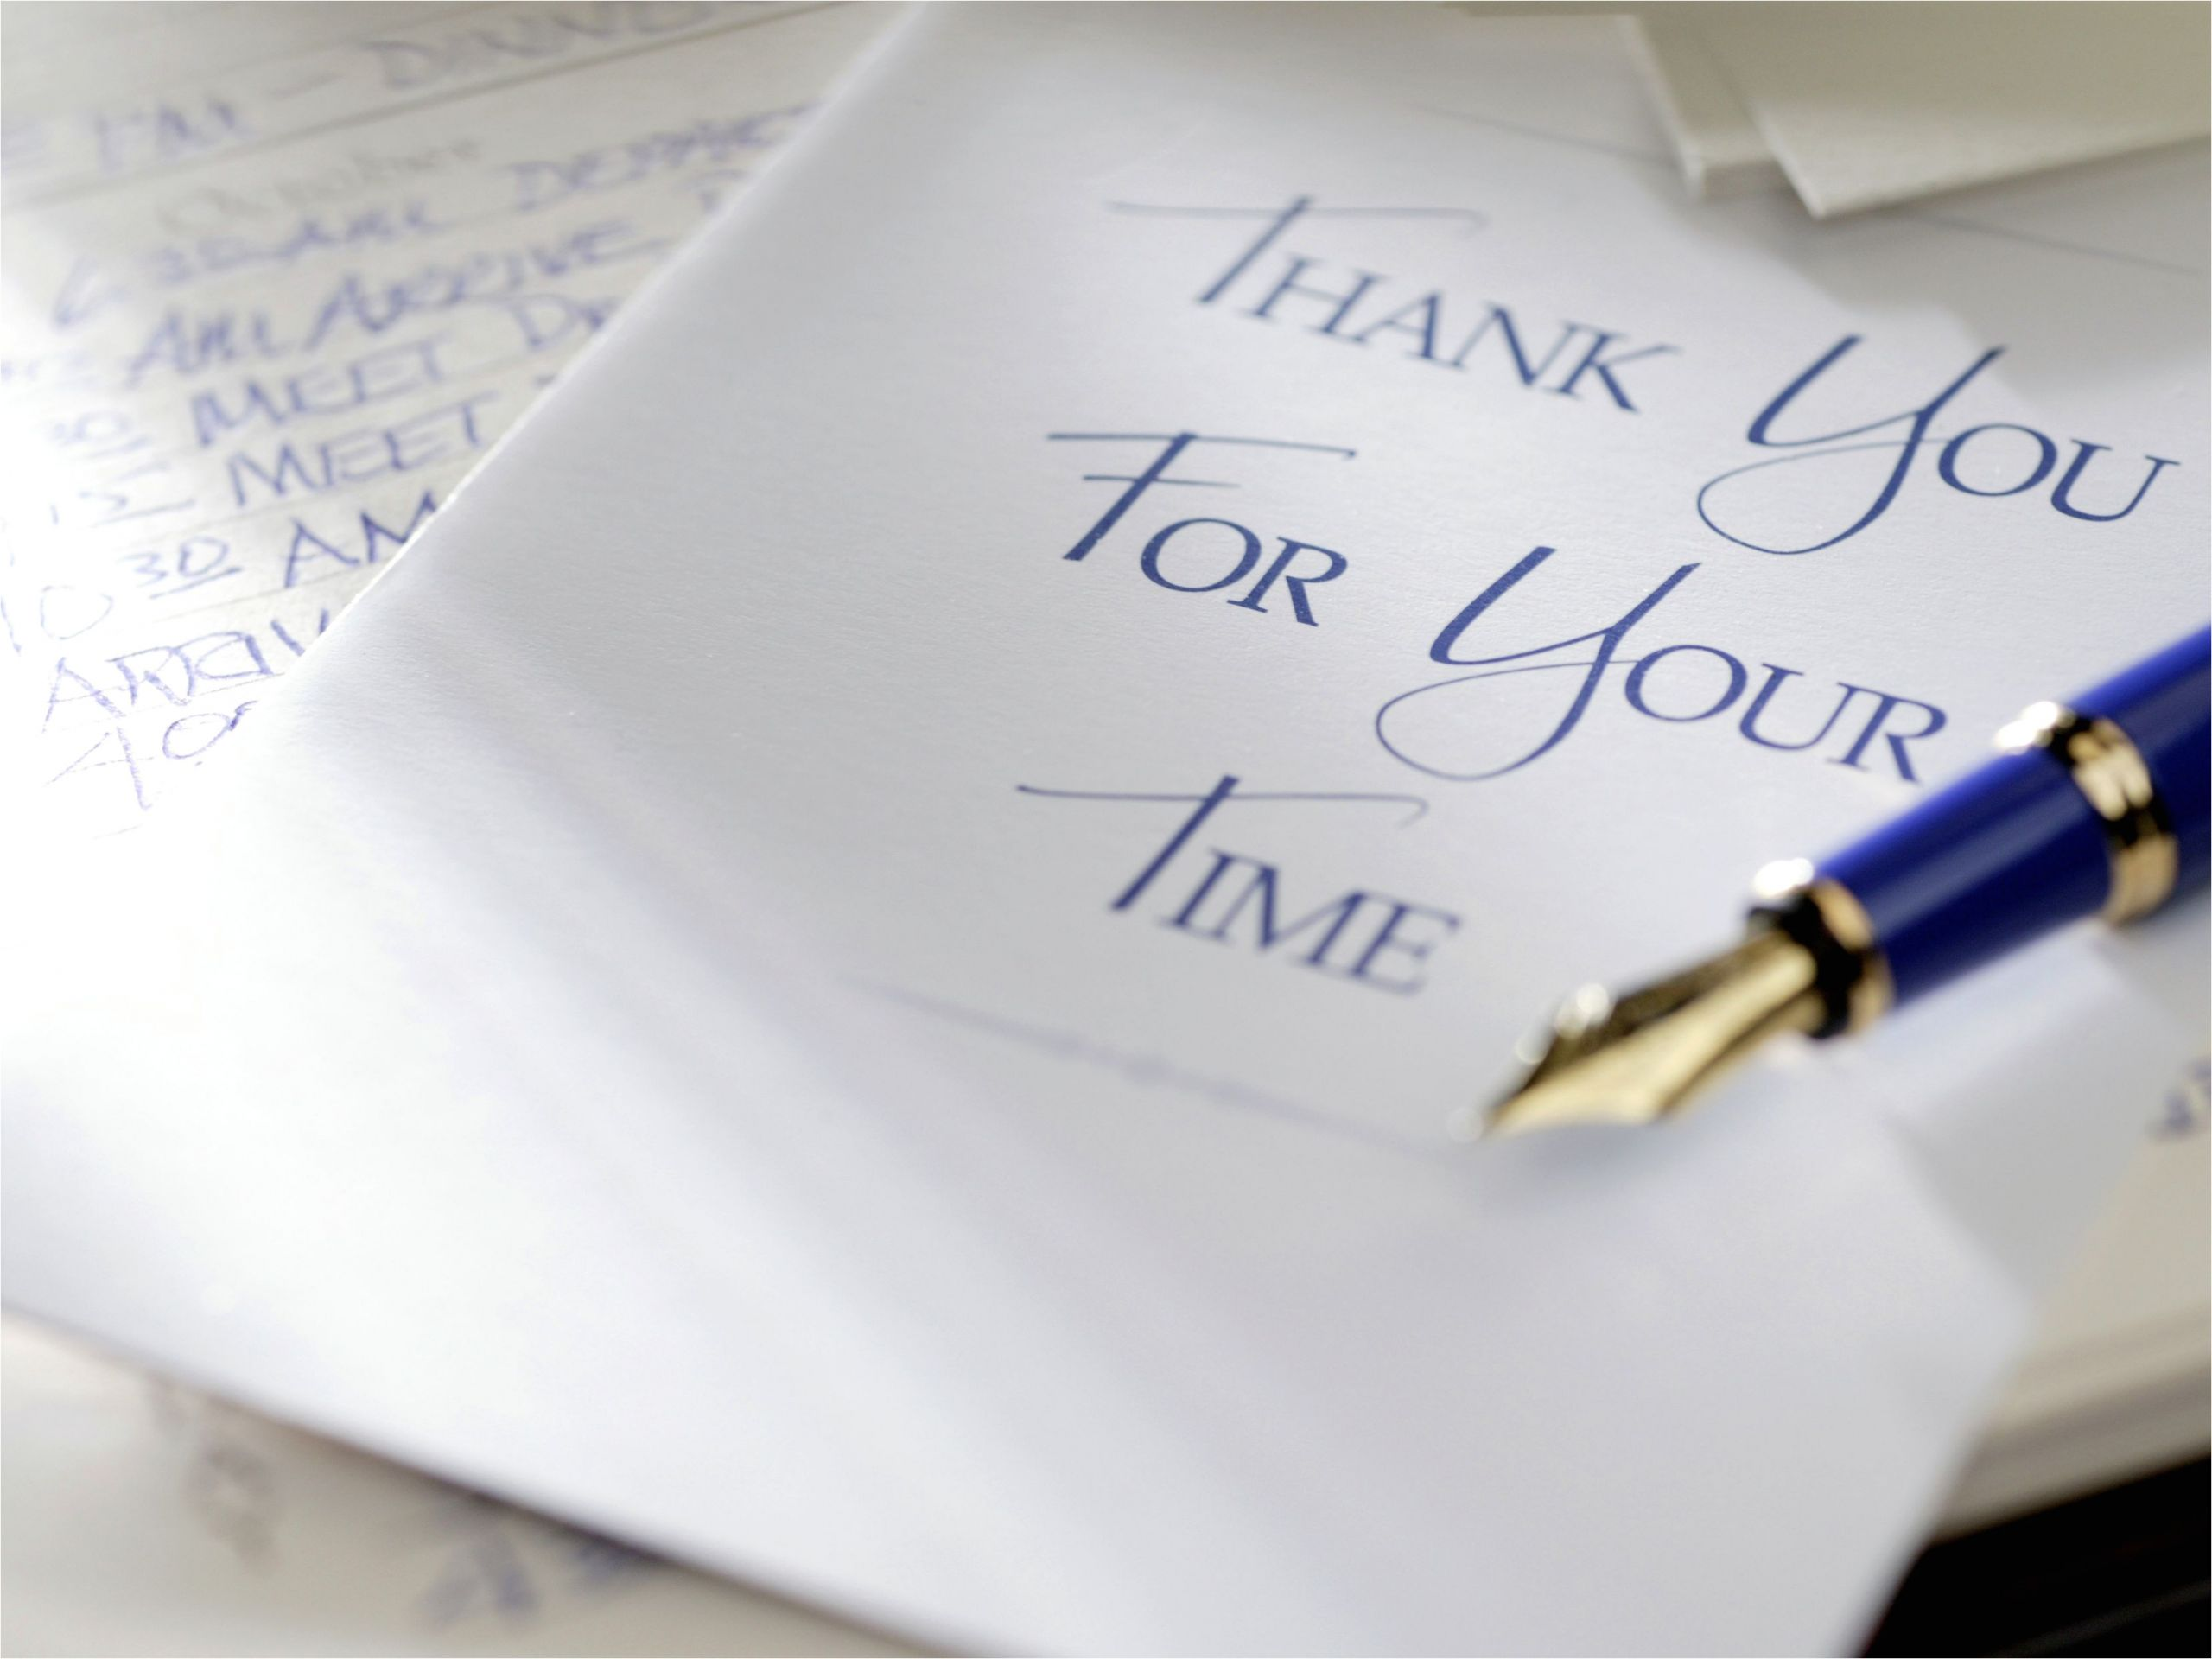 thank you for your time 172684716 5734ab515f9b58723d76ad5b jpg